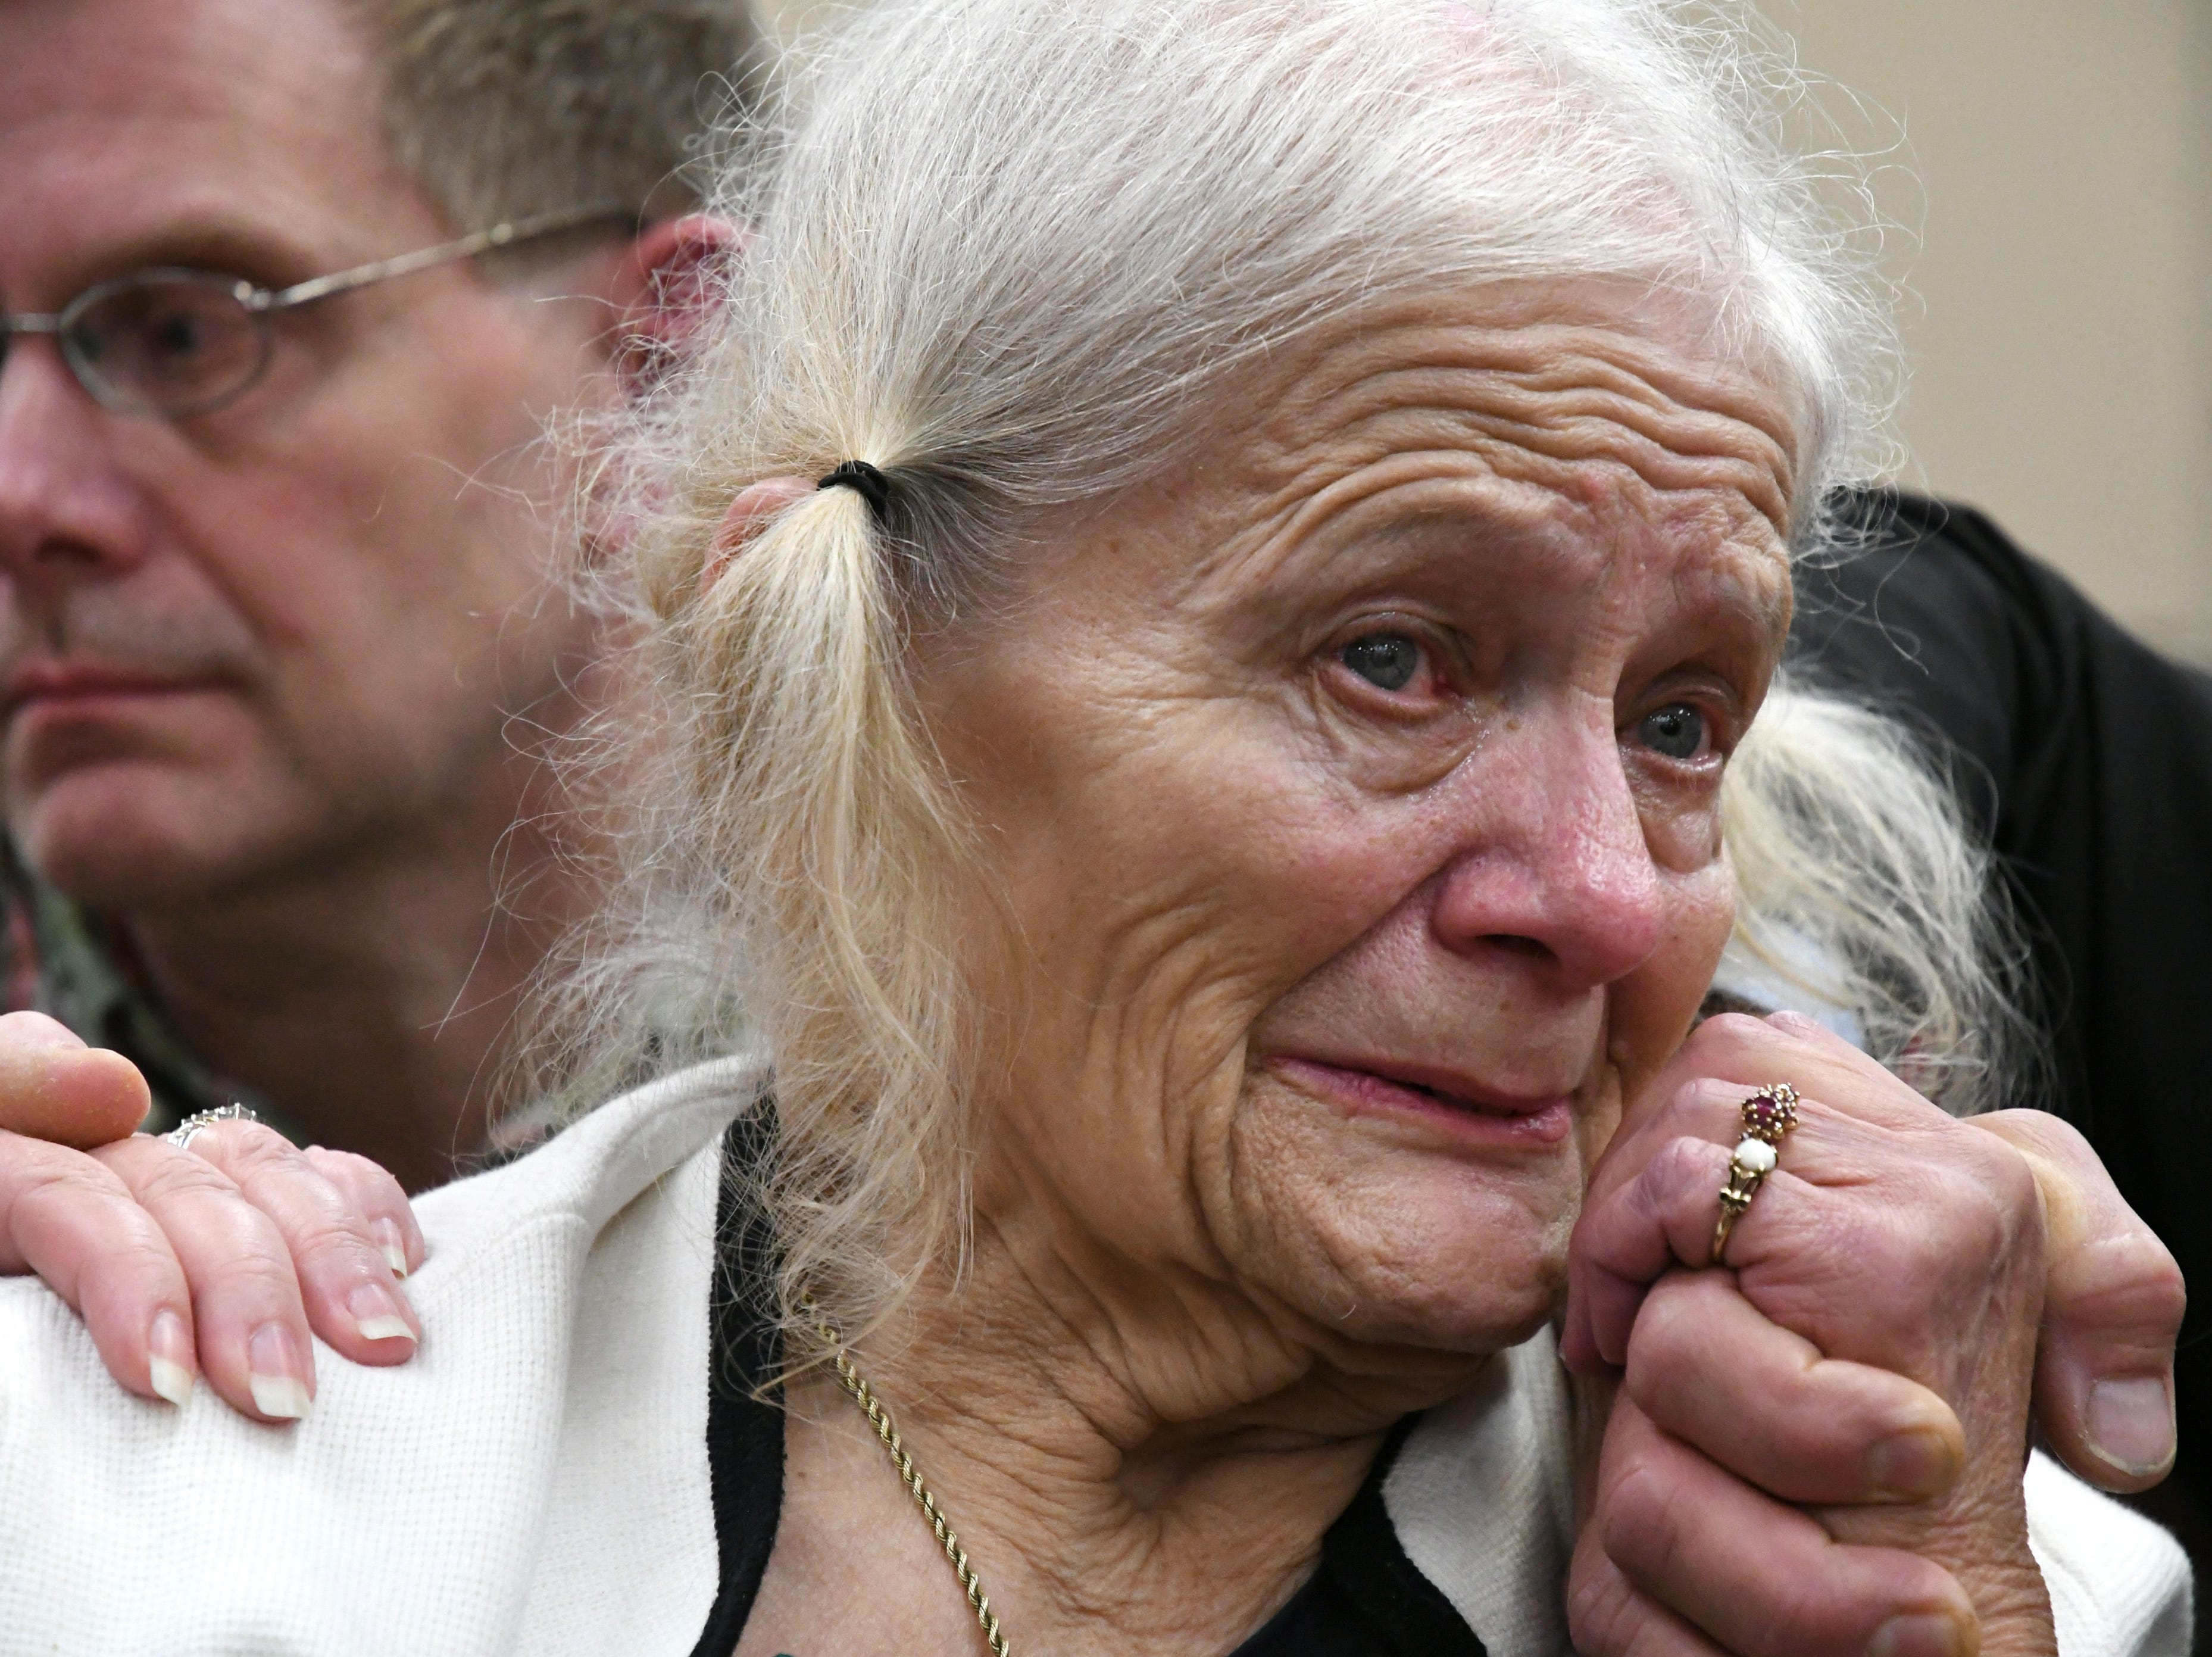 Cheryl Williams, mother of Mike Williams, the man who was shot and killed by his best friend 18 years ago, cries tears of joy for a the guilty verdicts in the trial against Denise Williams, Mike's former wife, Friday, Dec. 14, 2018.